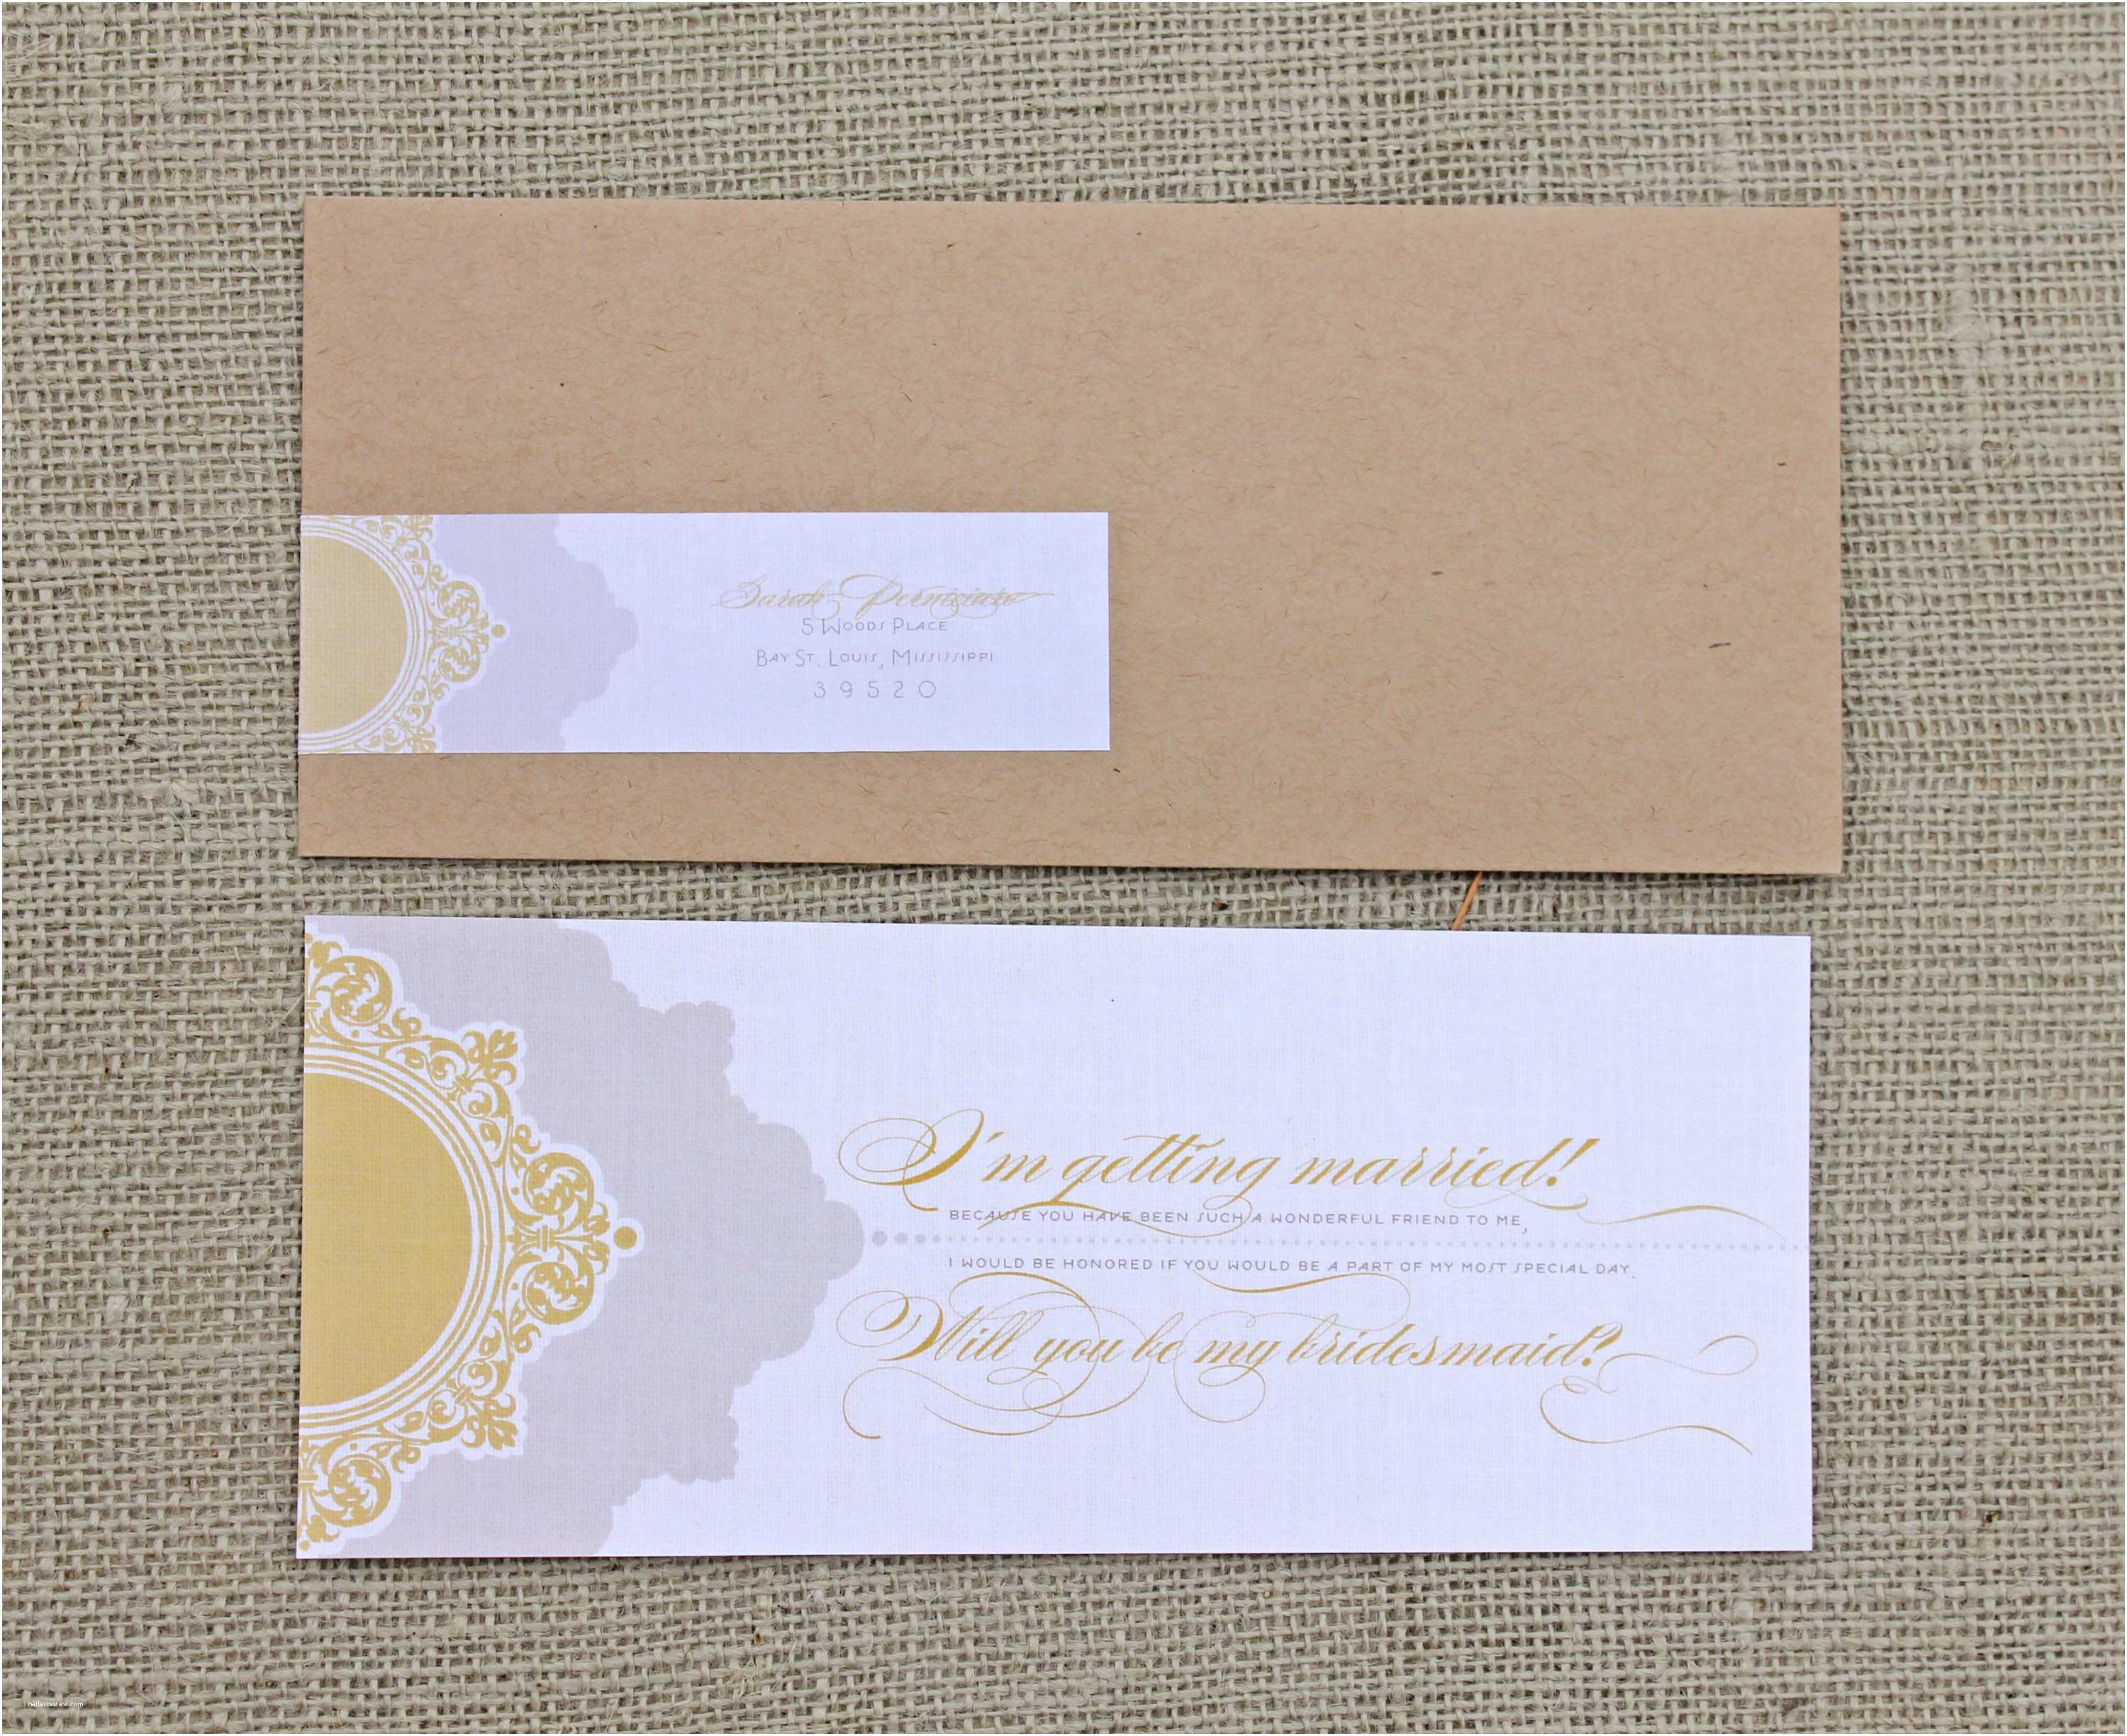 Printed Address Labels for Wedding Invitations Wedding Invitation Address Labels